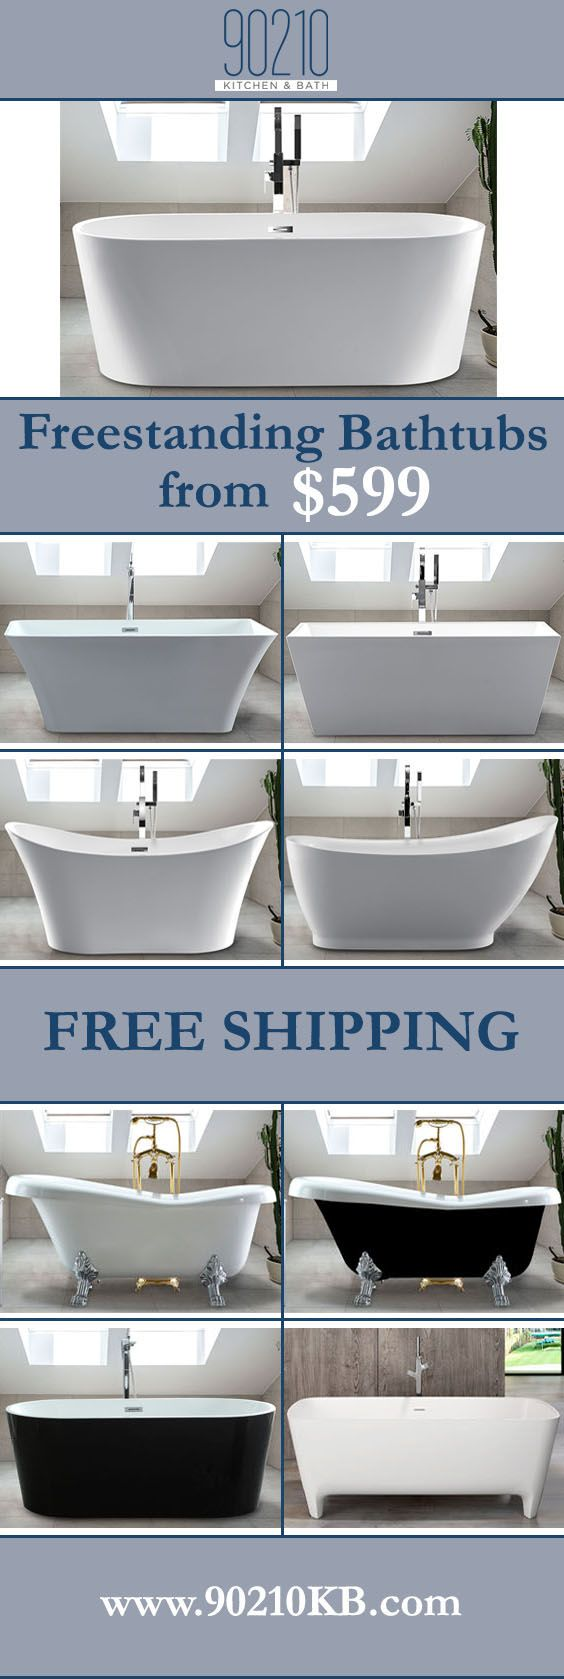 "Selection of Freestanding tubs in modern and traditional design starting at $599 in size ranges of 59"" 60"" 63"" 67"" 70"" 71""  These are high quality tubs at budget prices"